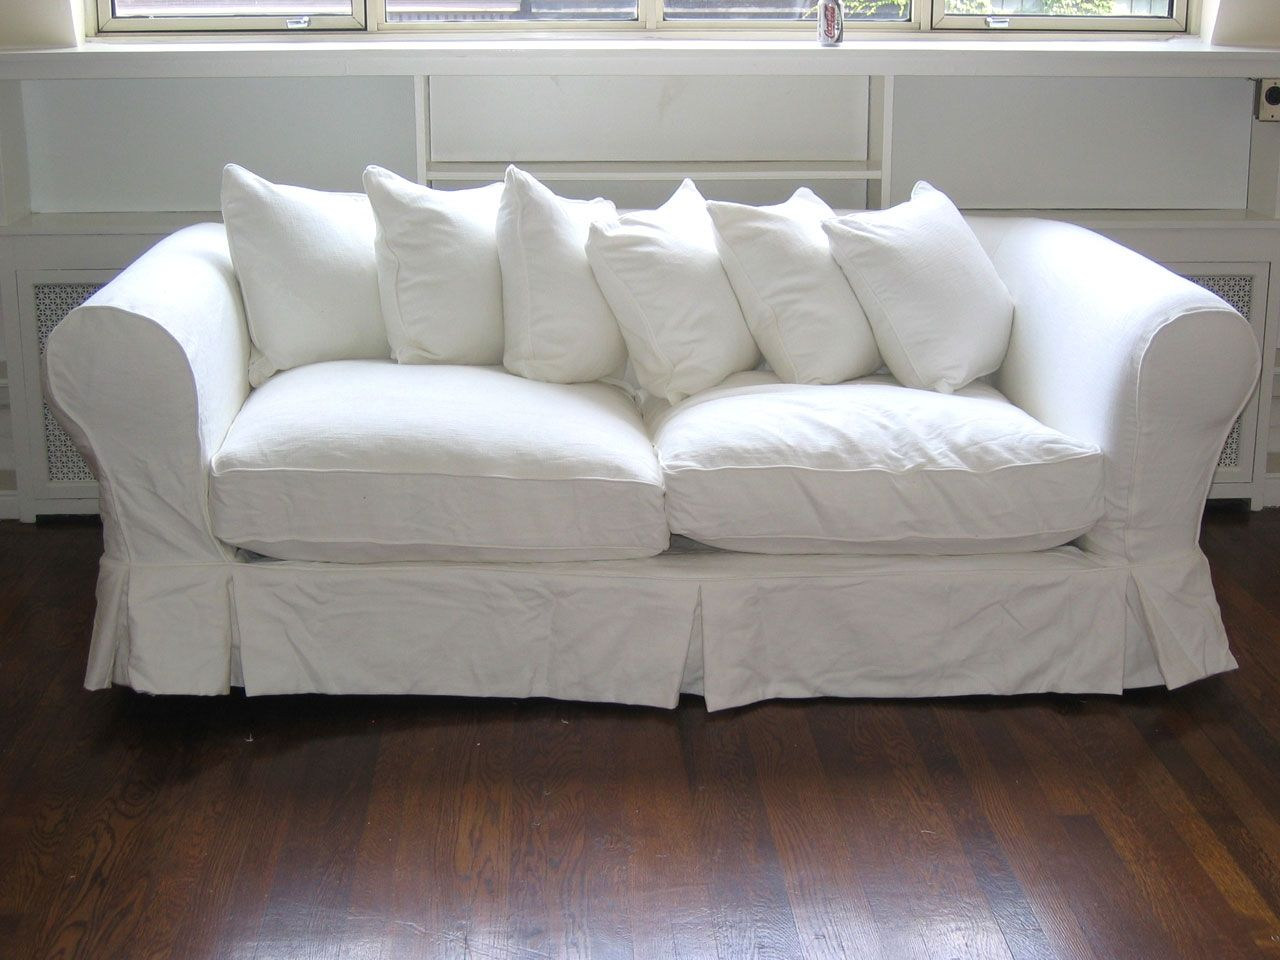 Magnificent White Overstuffed Sofa Trend White Overstuffed Sofa 70 Sofas And Couches Set With White Over Couch And Loveseat Couch Furniture White Couch Cover